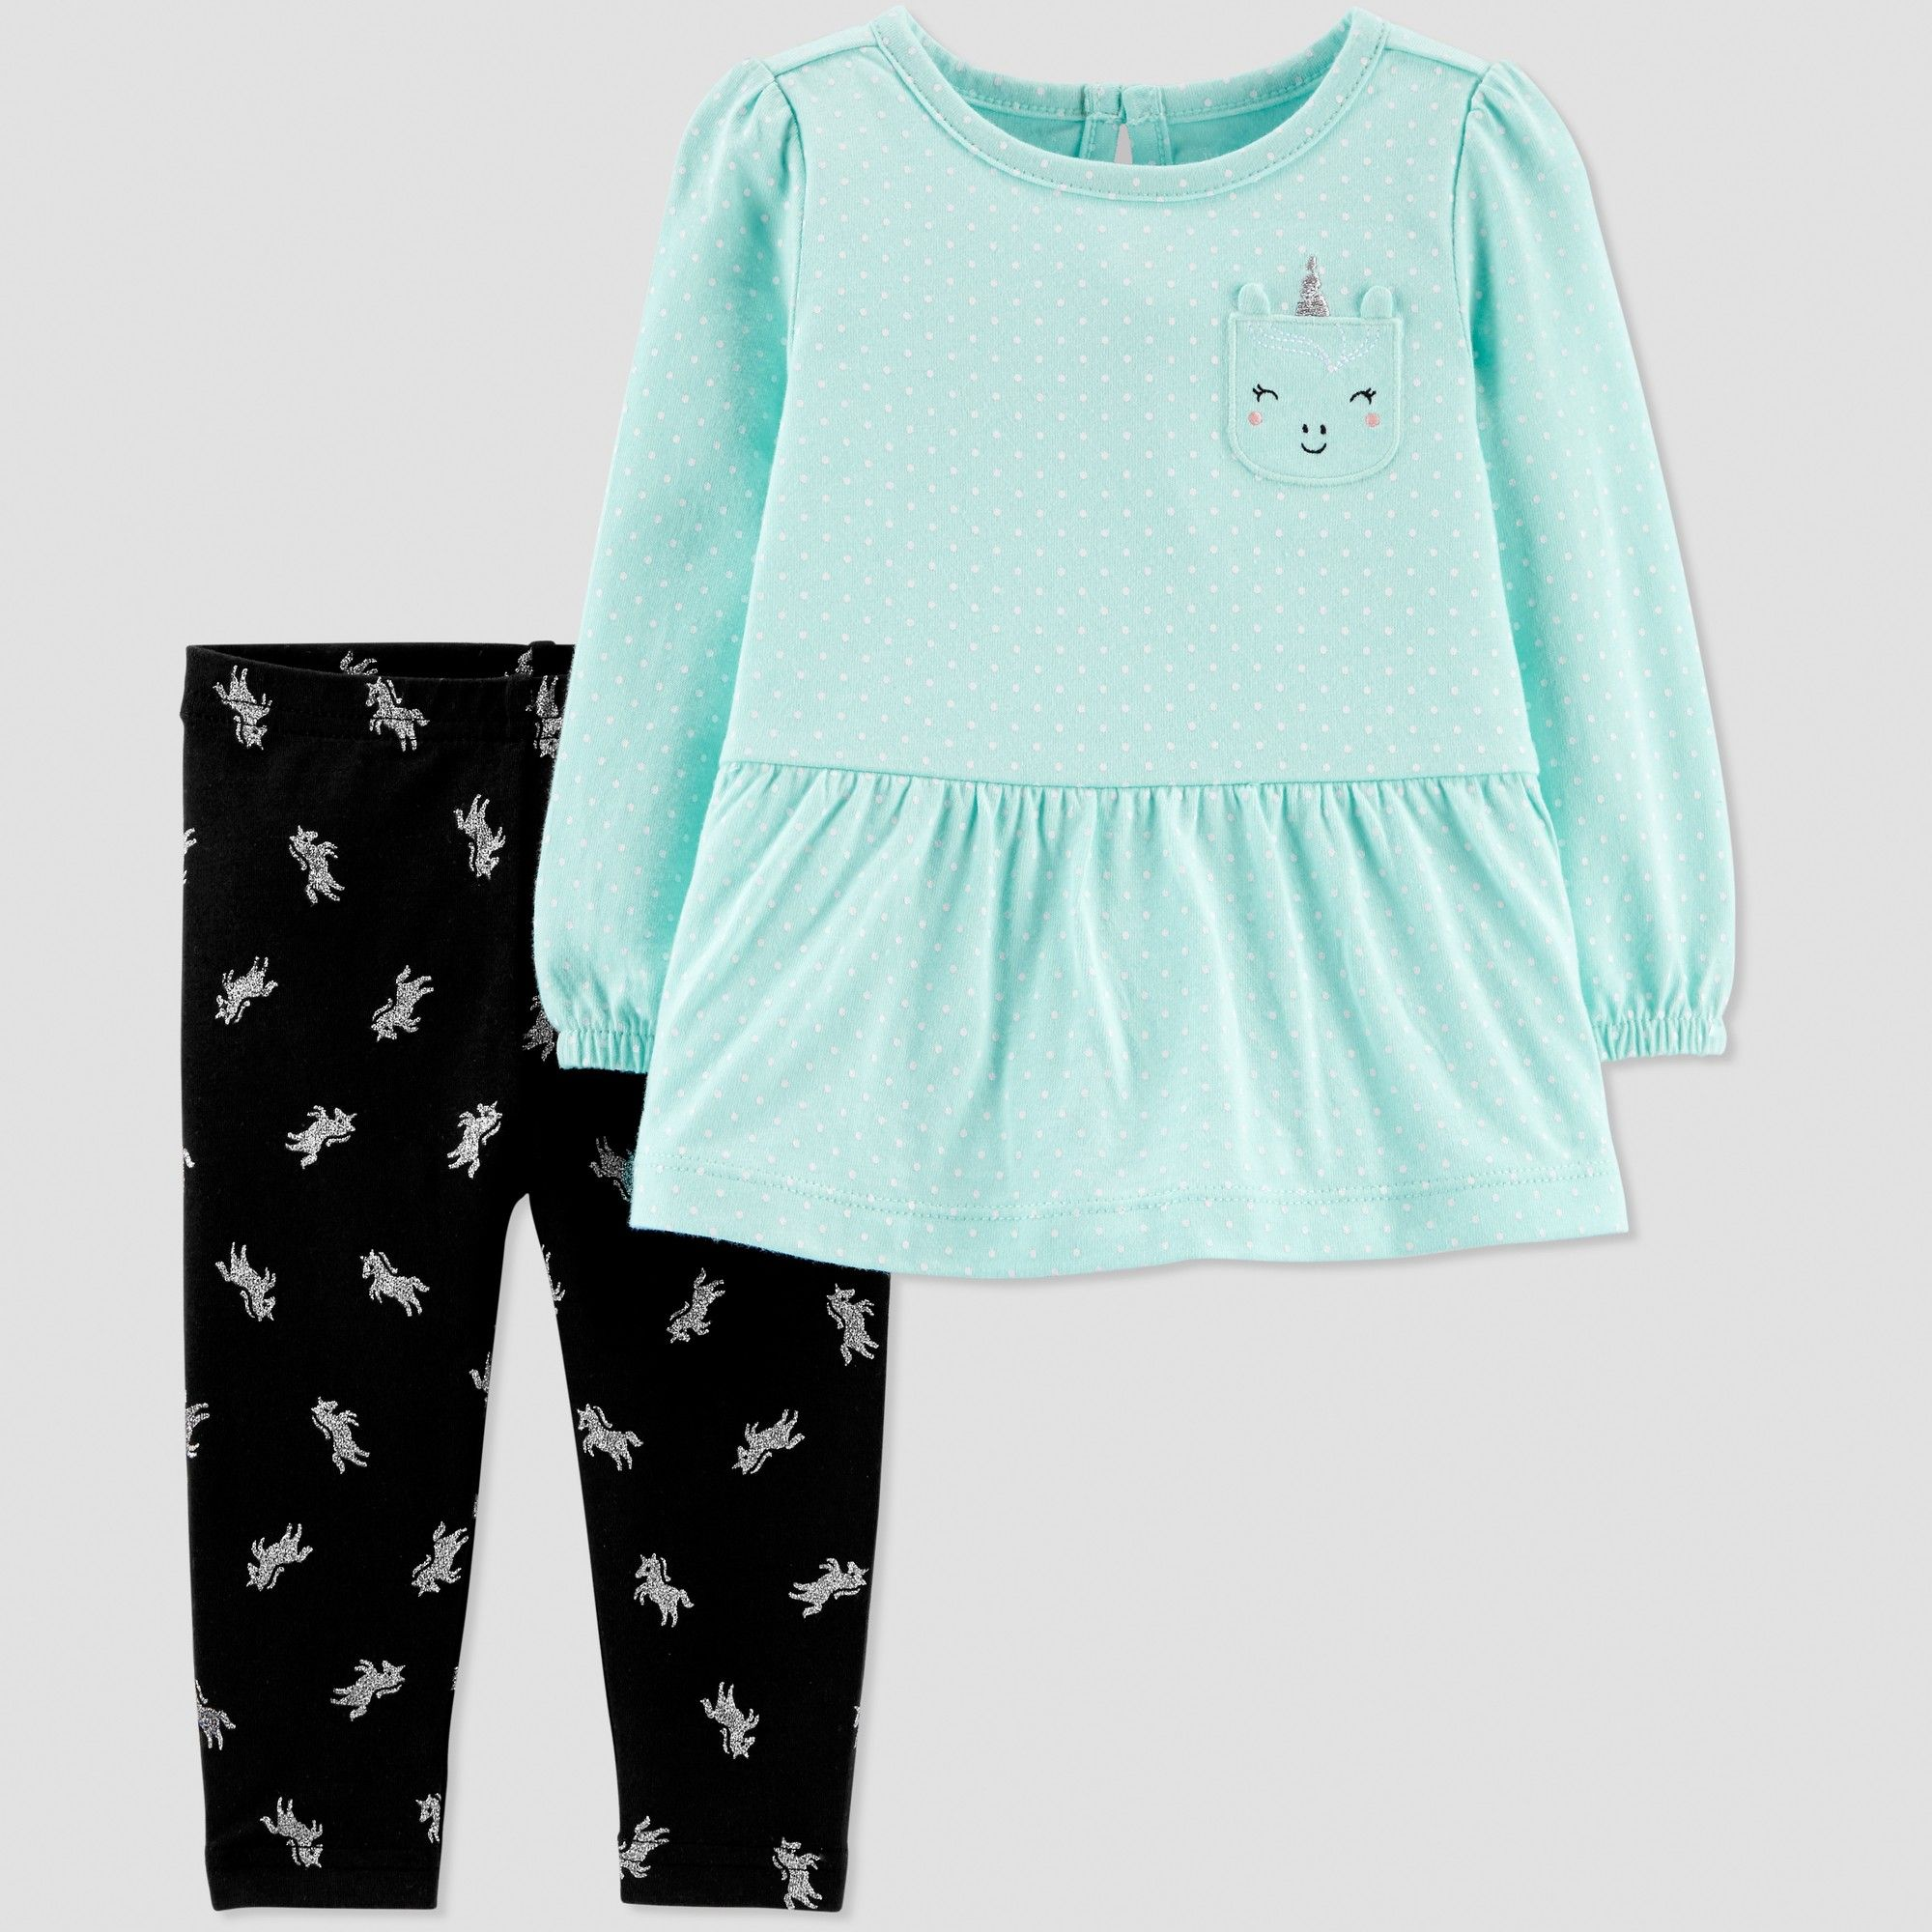 45a792bca78 Baby Girls  2pc Unicorn Pant Set - Just One You made by carter s Mint  Blue Black 6M